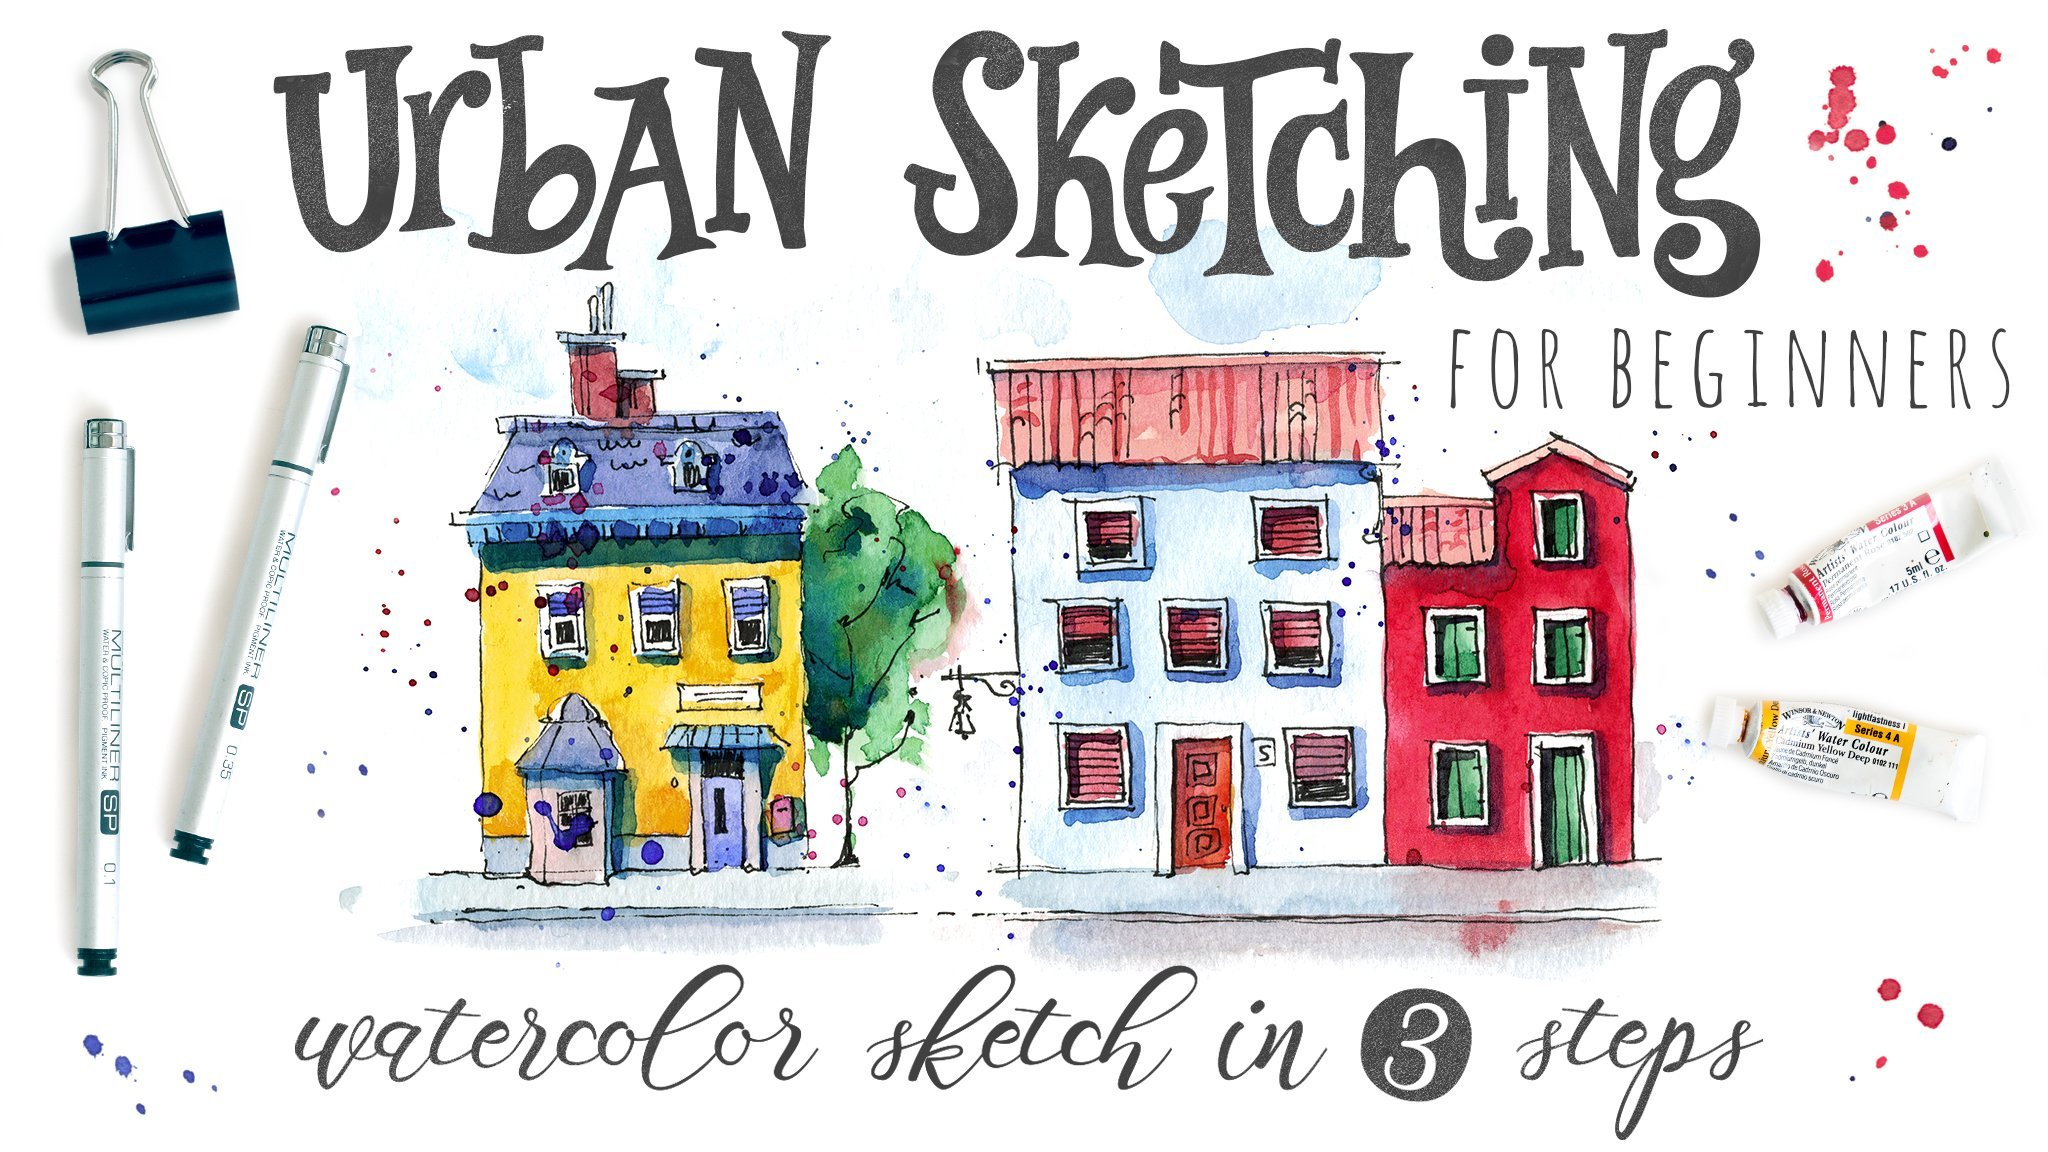 Sketching - Free Courses & Tutorials to Learn Sketching Online - 2019